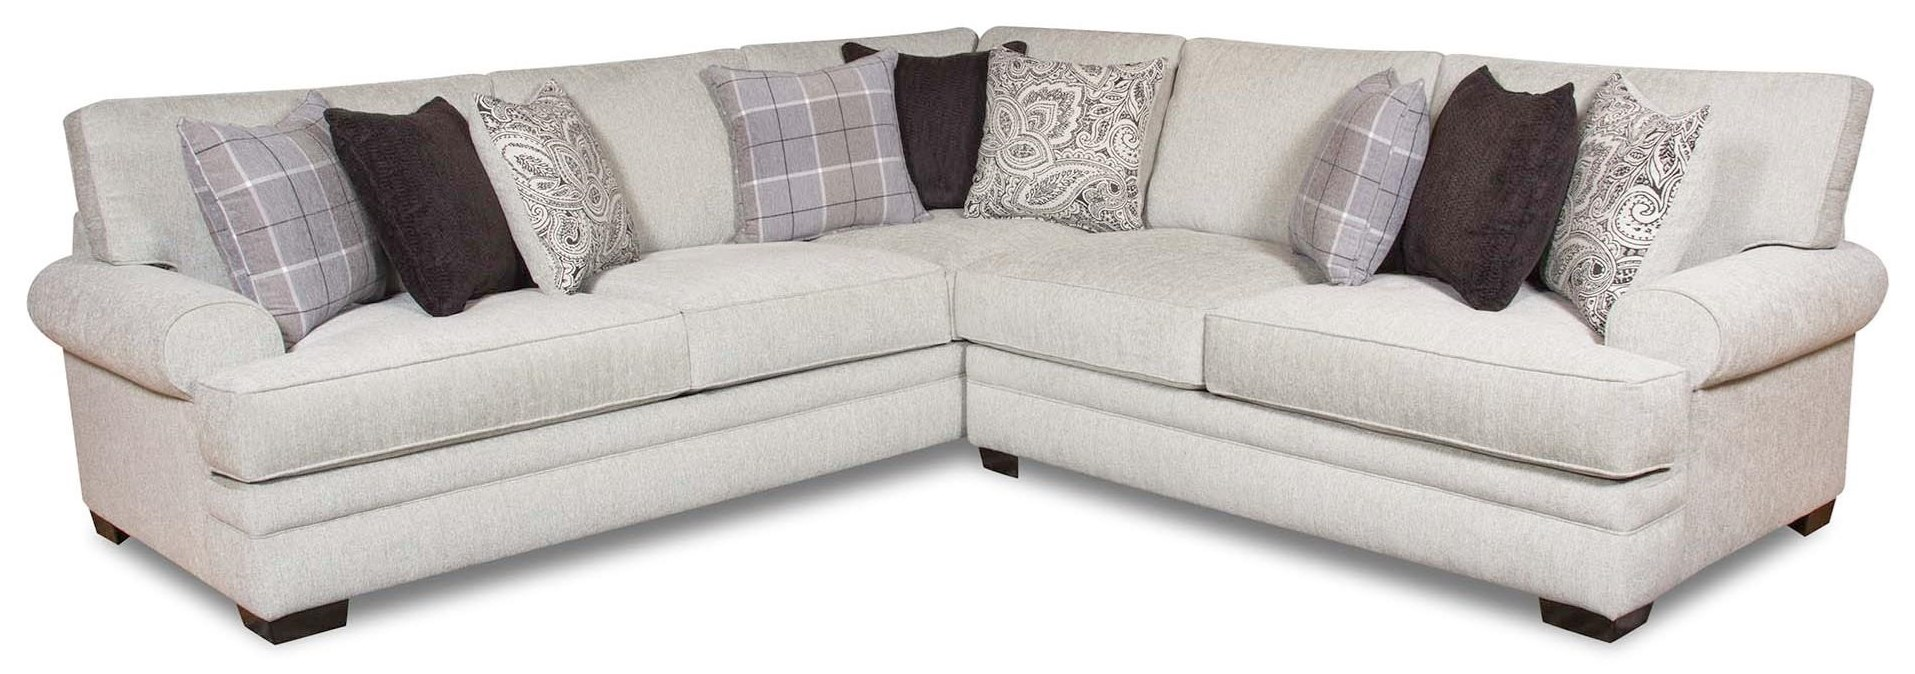 Griffin Sectional Sofa by Corinthian at Standard Furniture